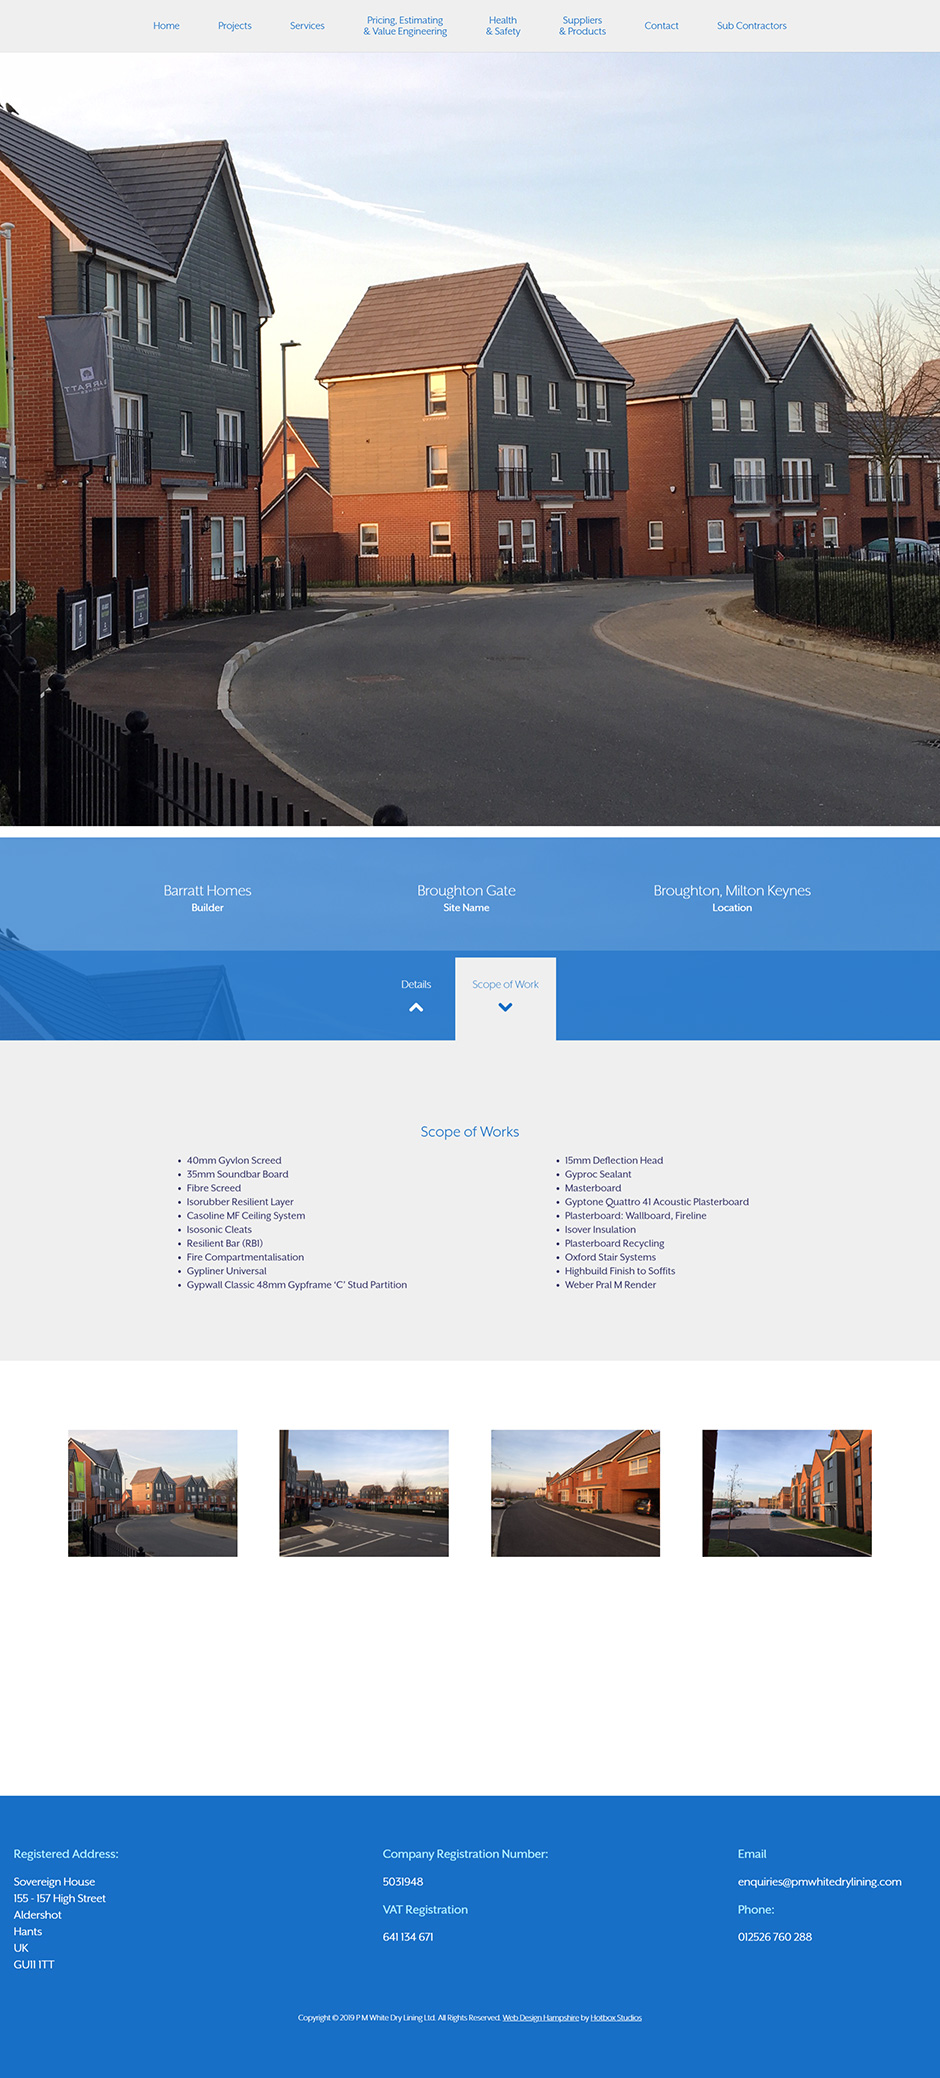 PM White Dry Lining Website Design and WordPress Development SP005 Project Broughton Gate